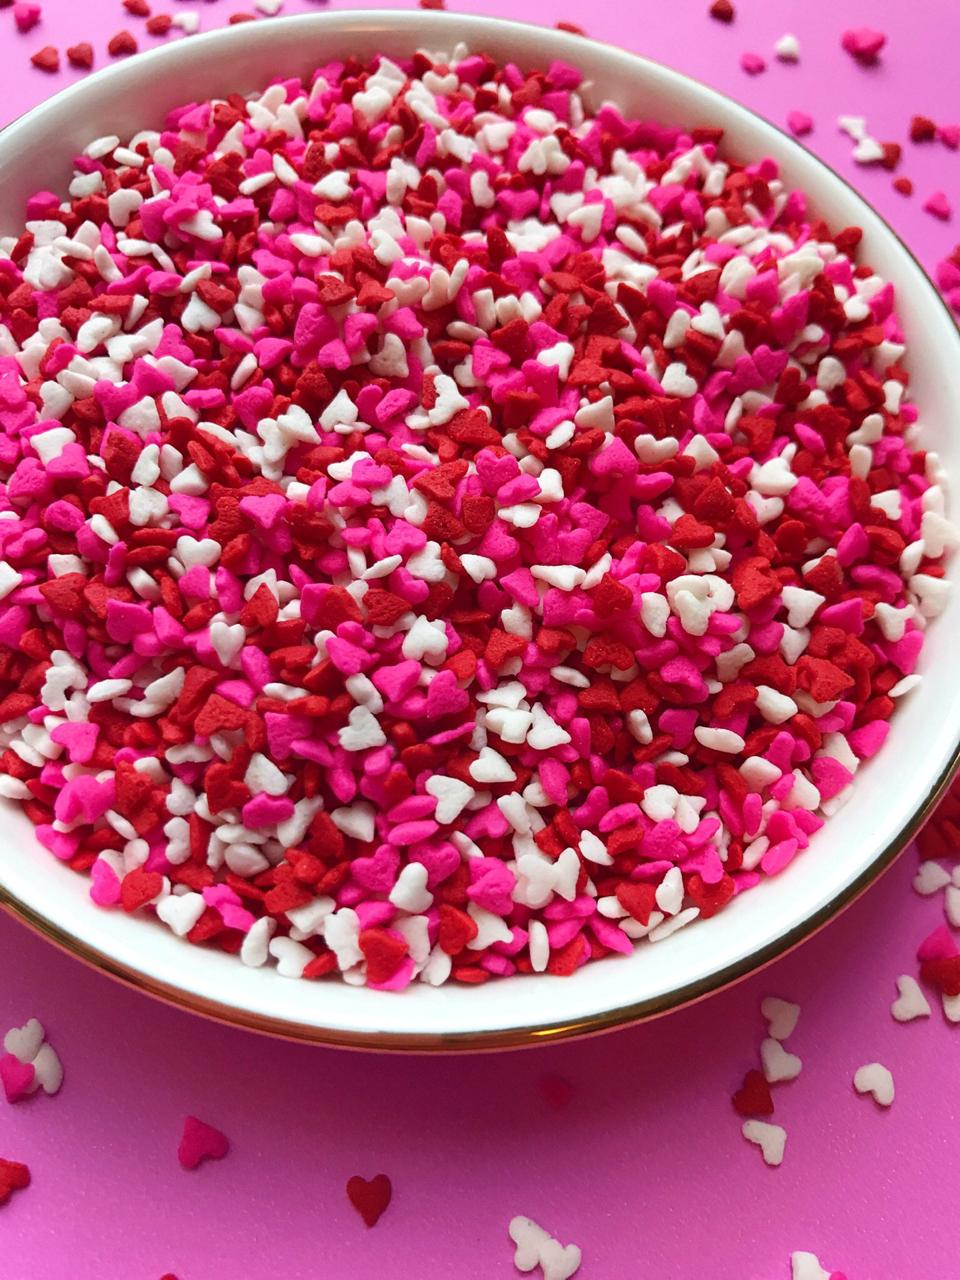 CDP014 - Mini Hearts Red White Pink Sprinkles Confetti 25gm